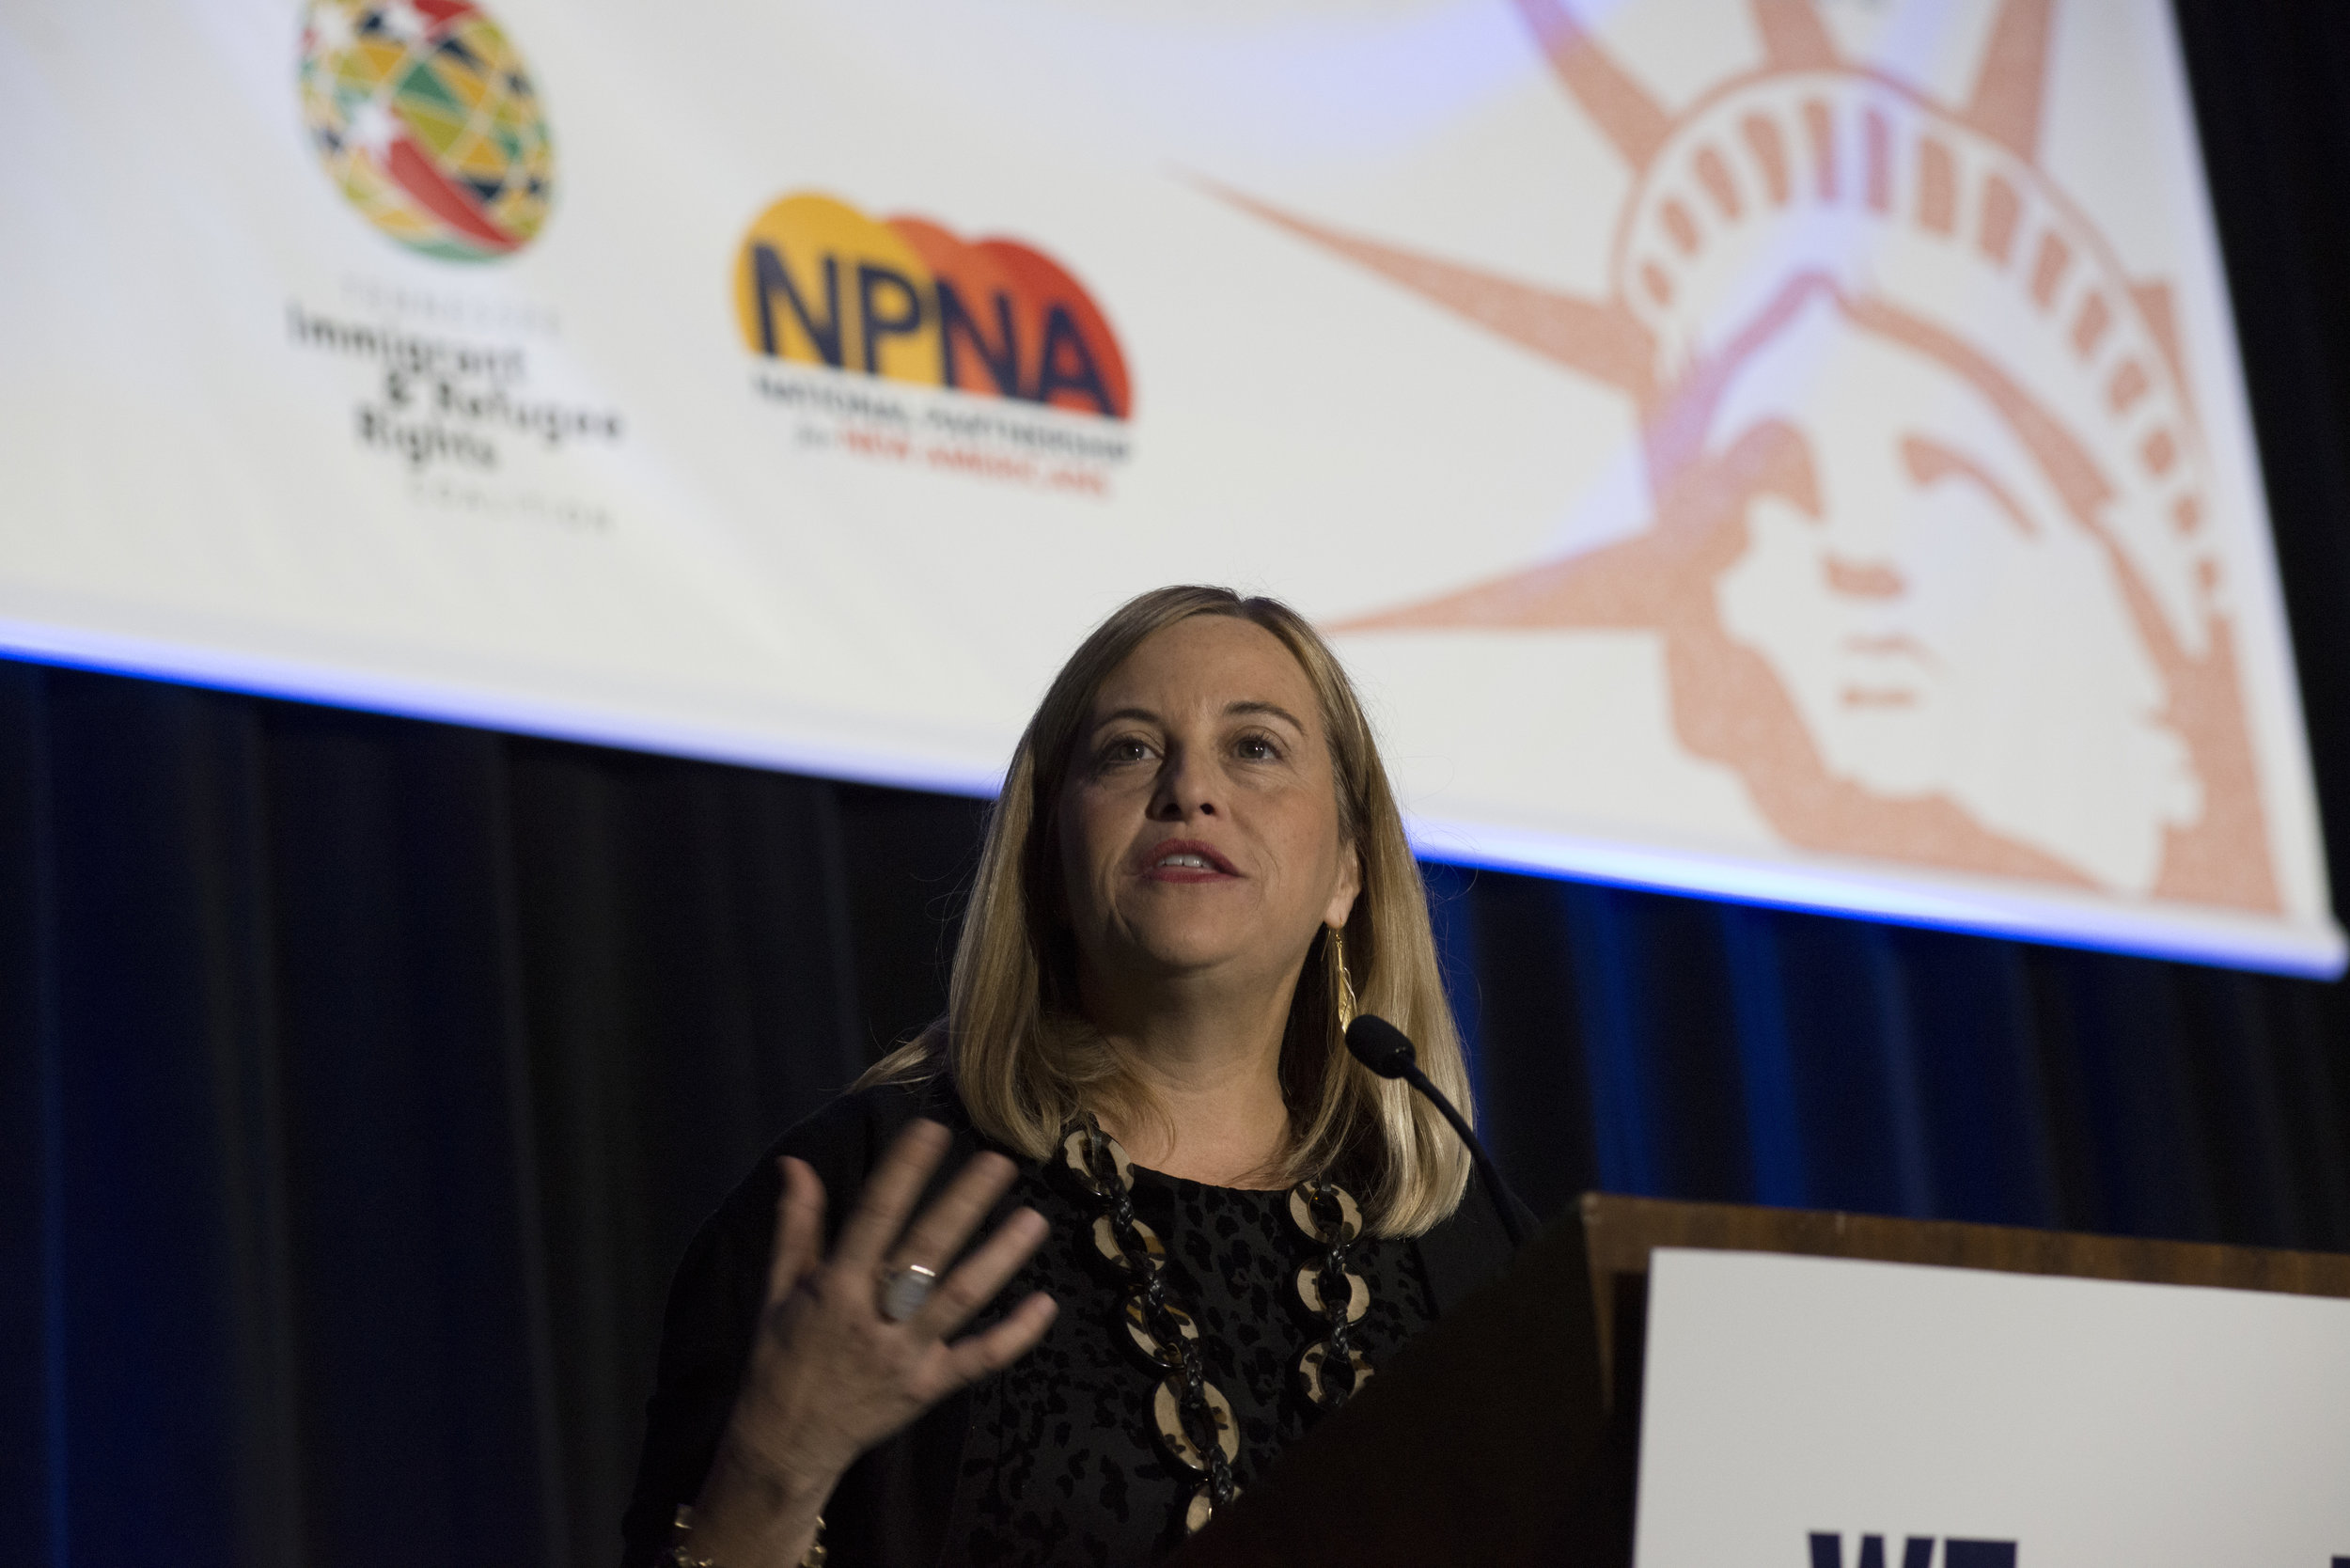 NIIC 2016 Monday 121216  _c. Carolina Kroon_DSC1895.jpg